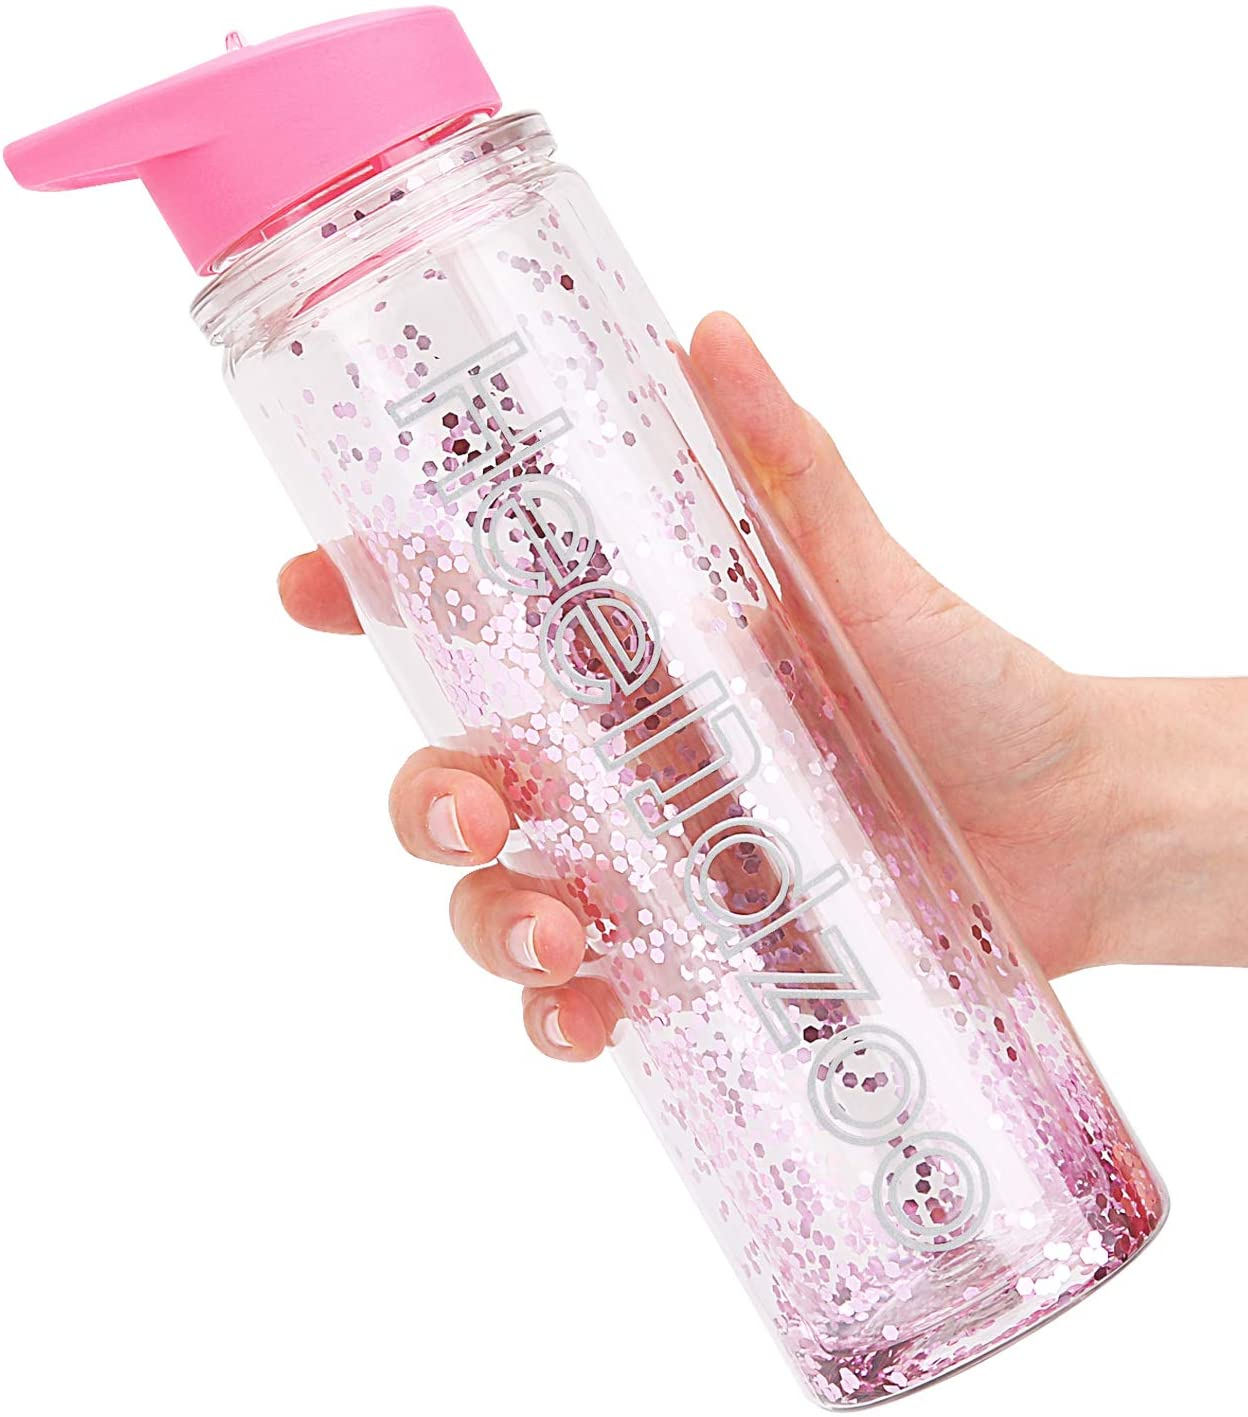 Girls Water Bottles With Straw For School,18oz Glitter Water Bottles Kids,Water Bottoles For Women,Leak Proof,Plastic BPA Free,Double Wall Insulated,Keep Beverages Hot or cold,for Fitness,Sports (Pink)